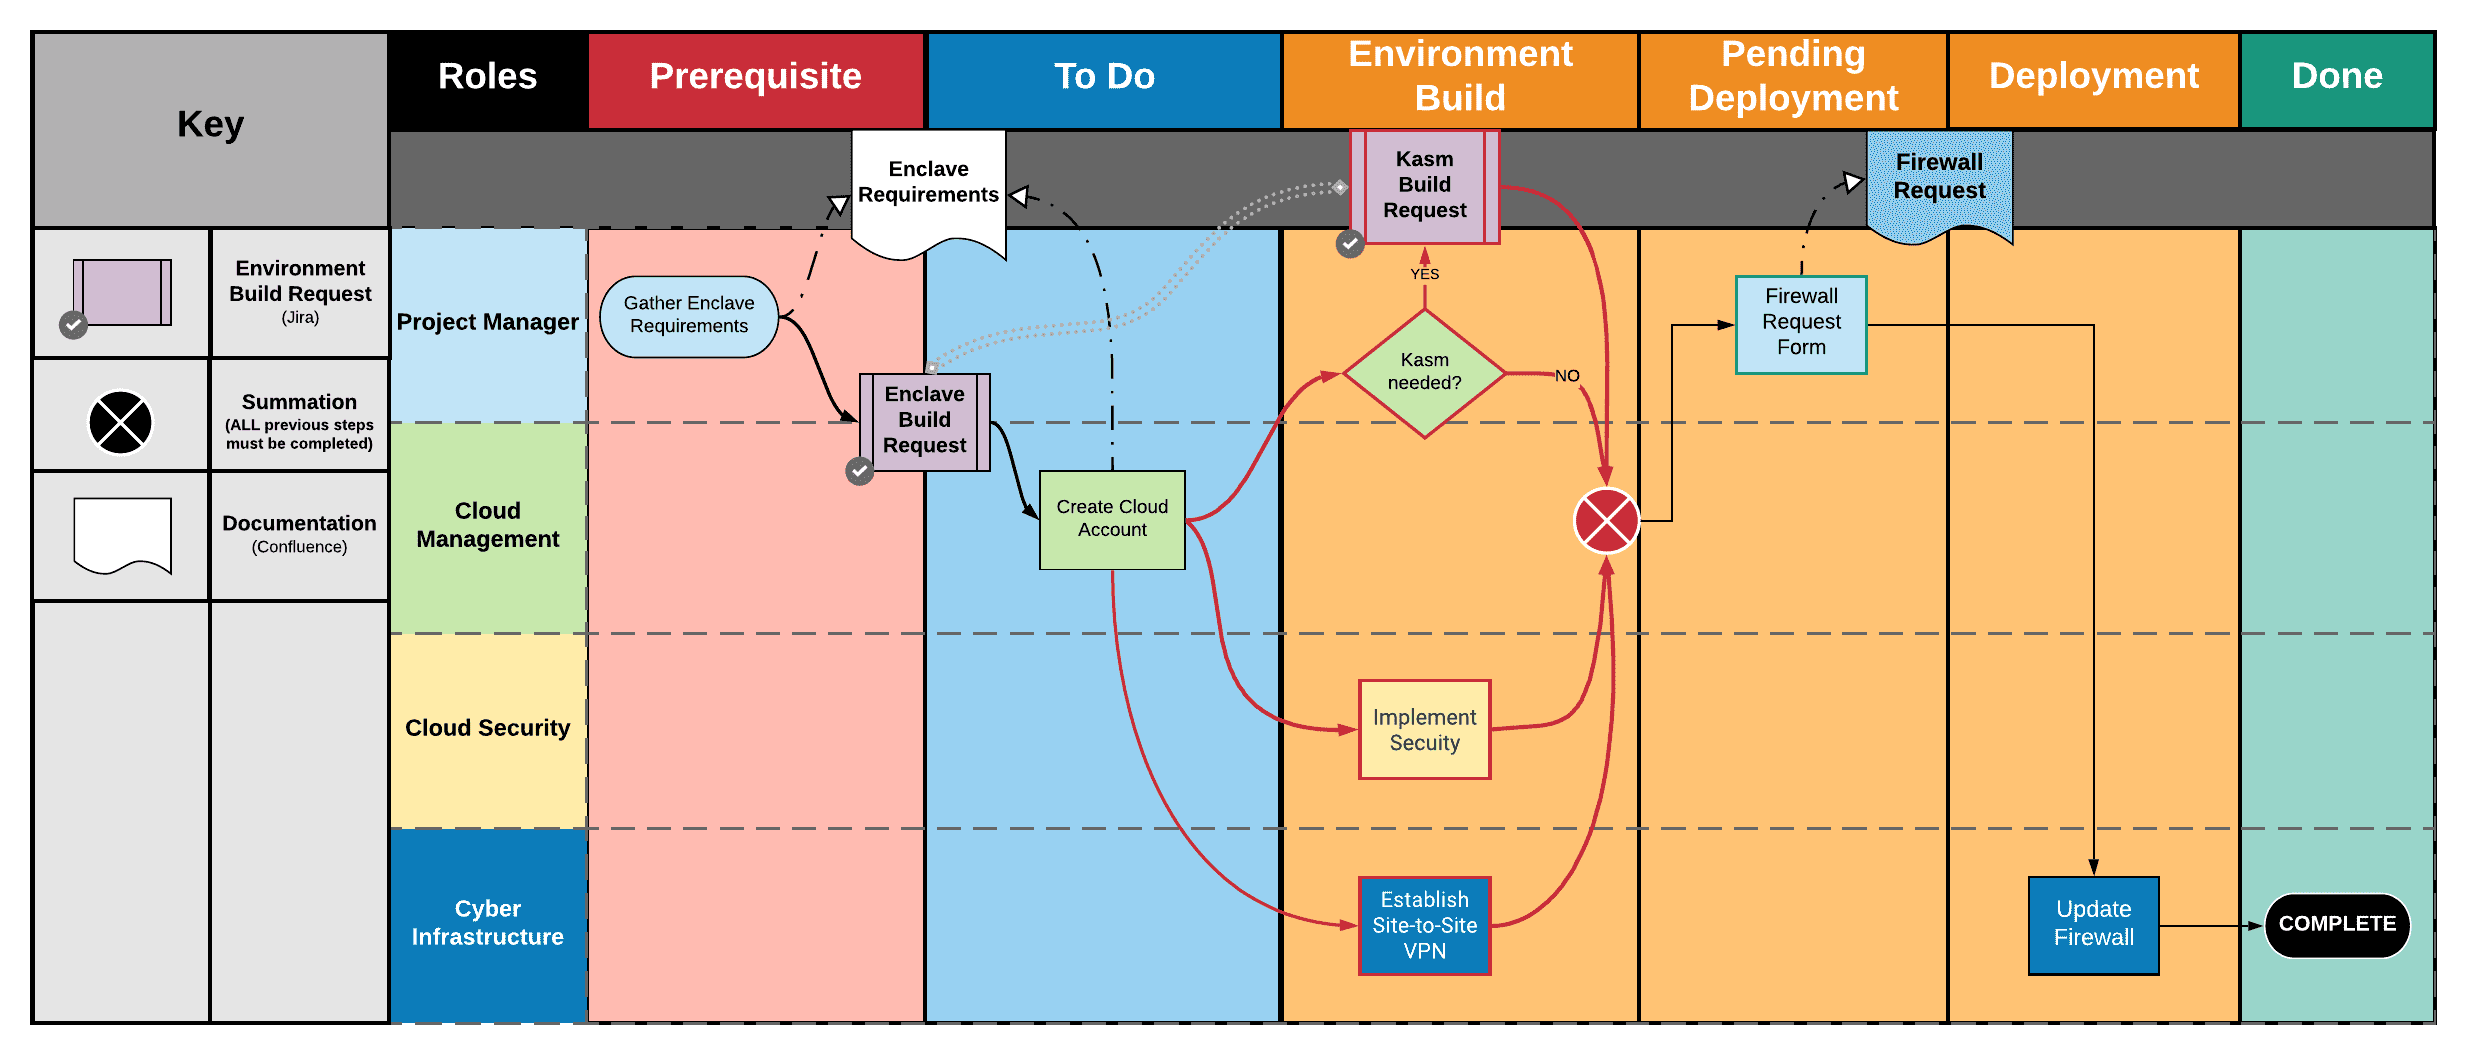 Visualizing the process before Jira implementation